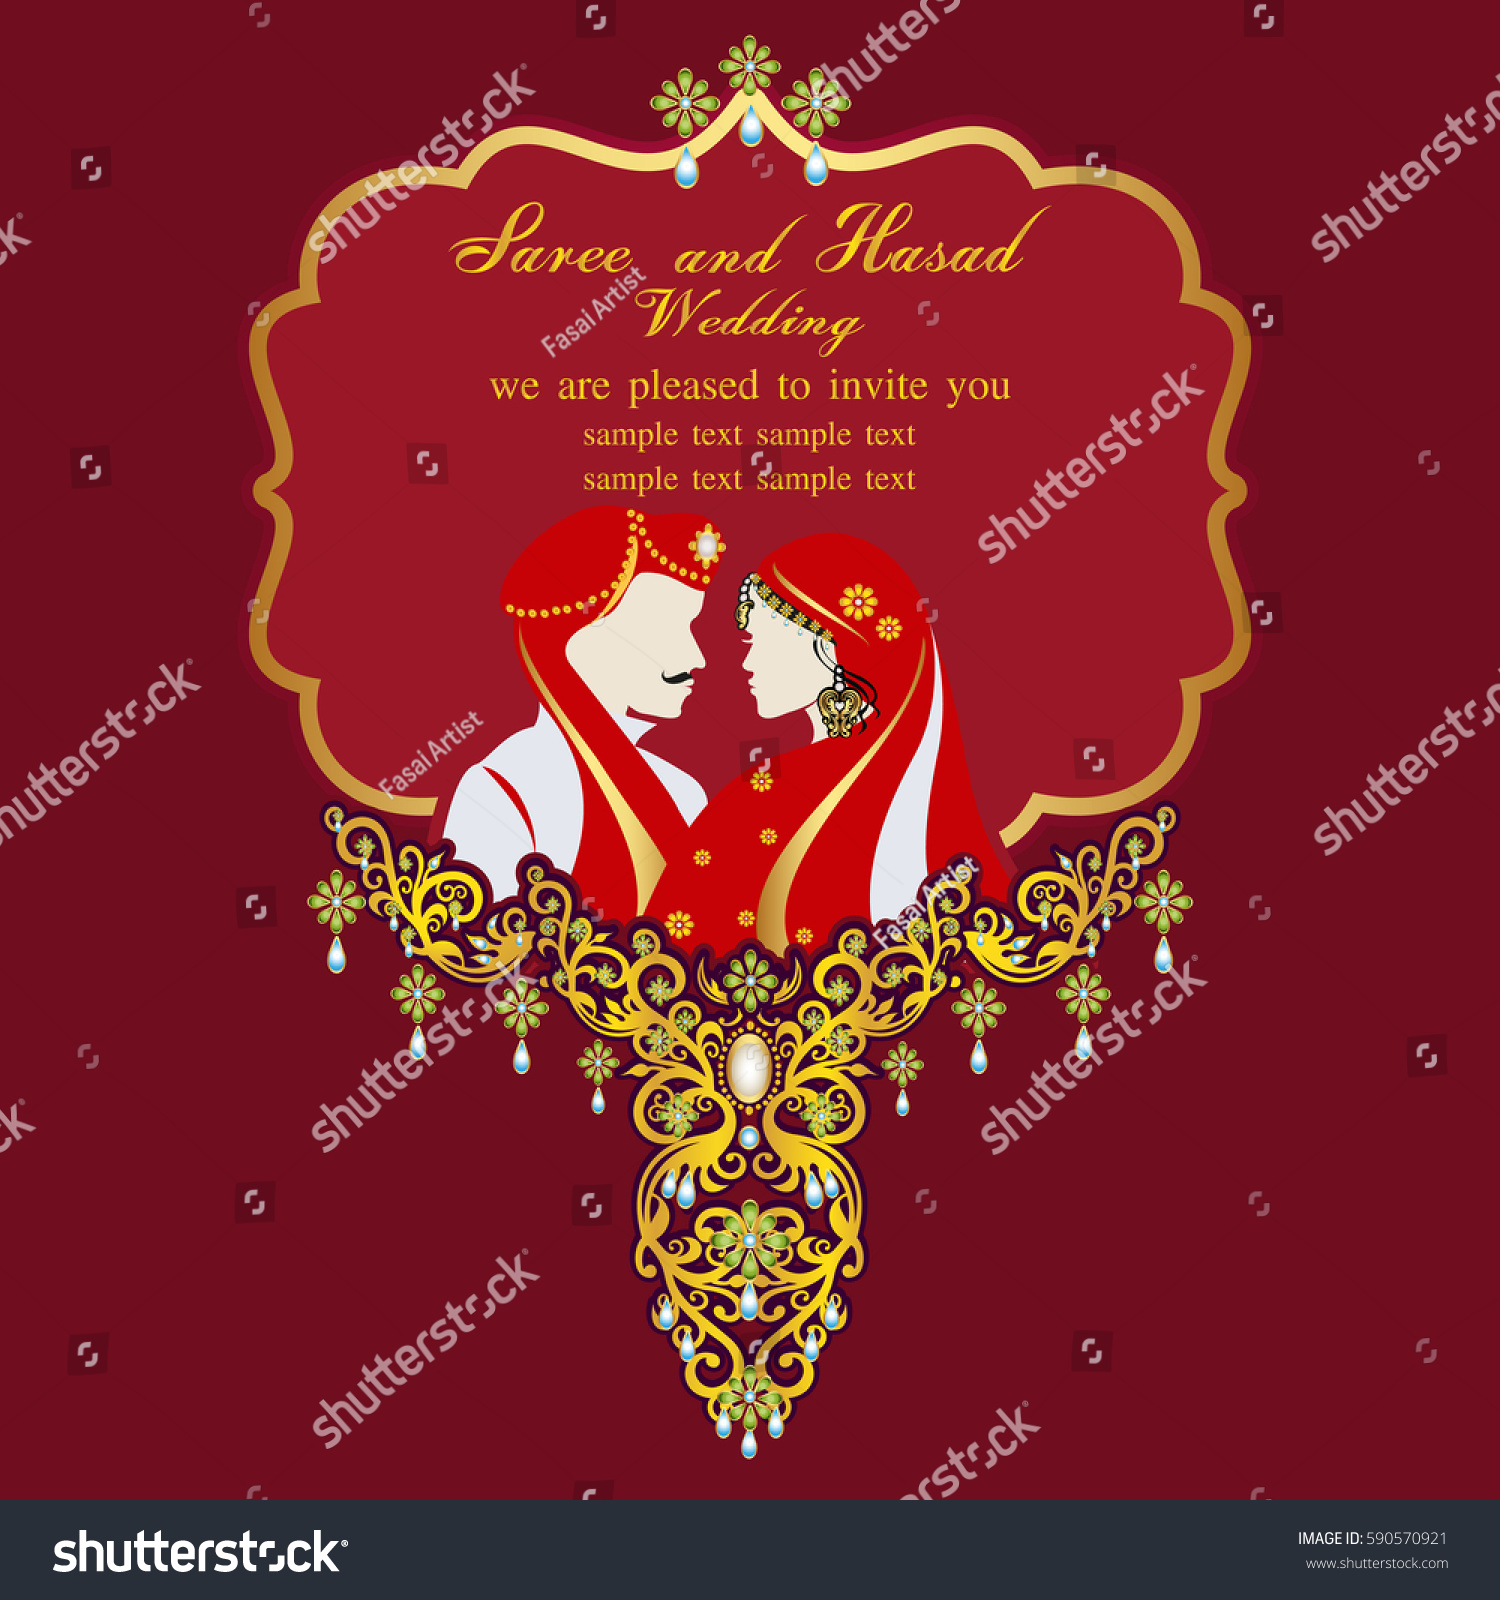 Indian Wedding Invitation Card Abstract Background Stock Vector Royalty Free 590570921